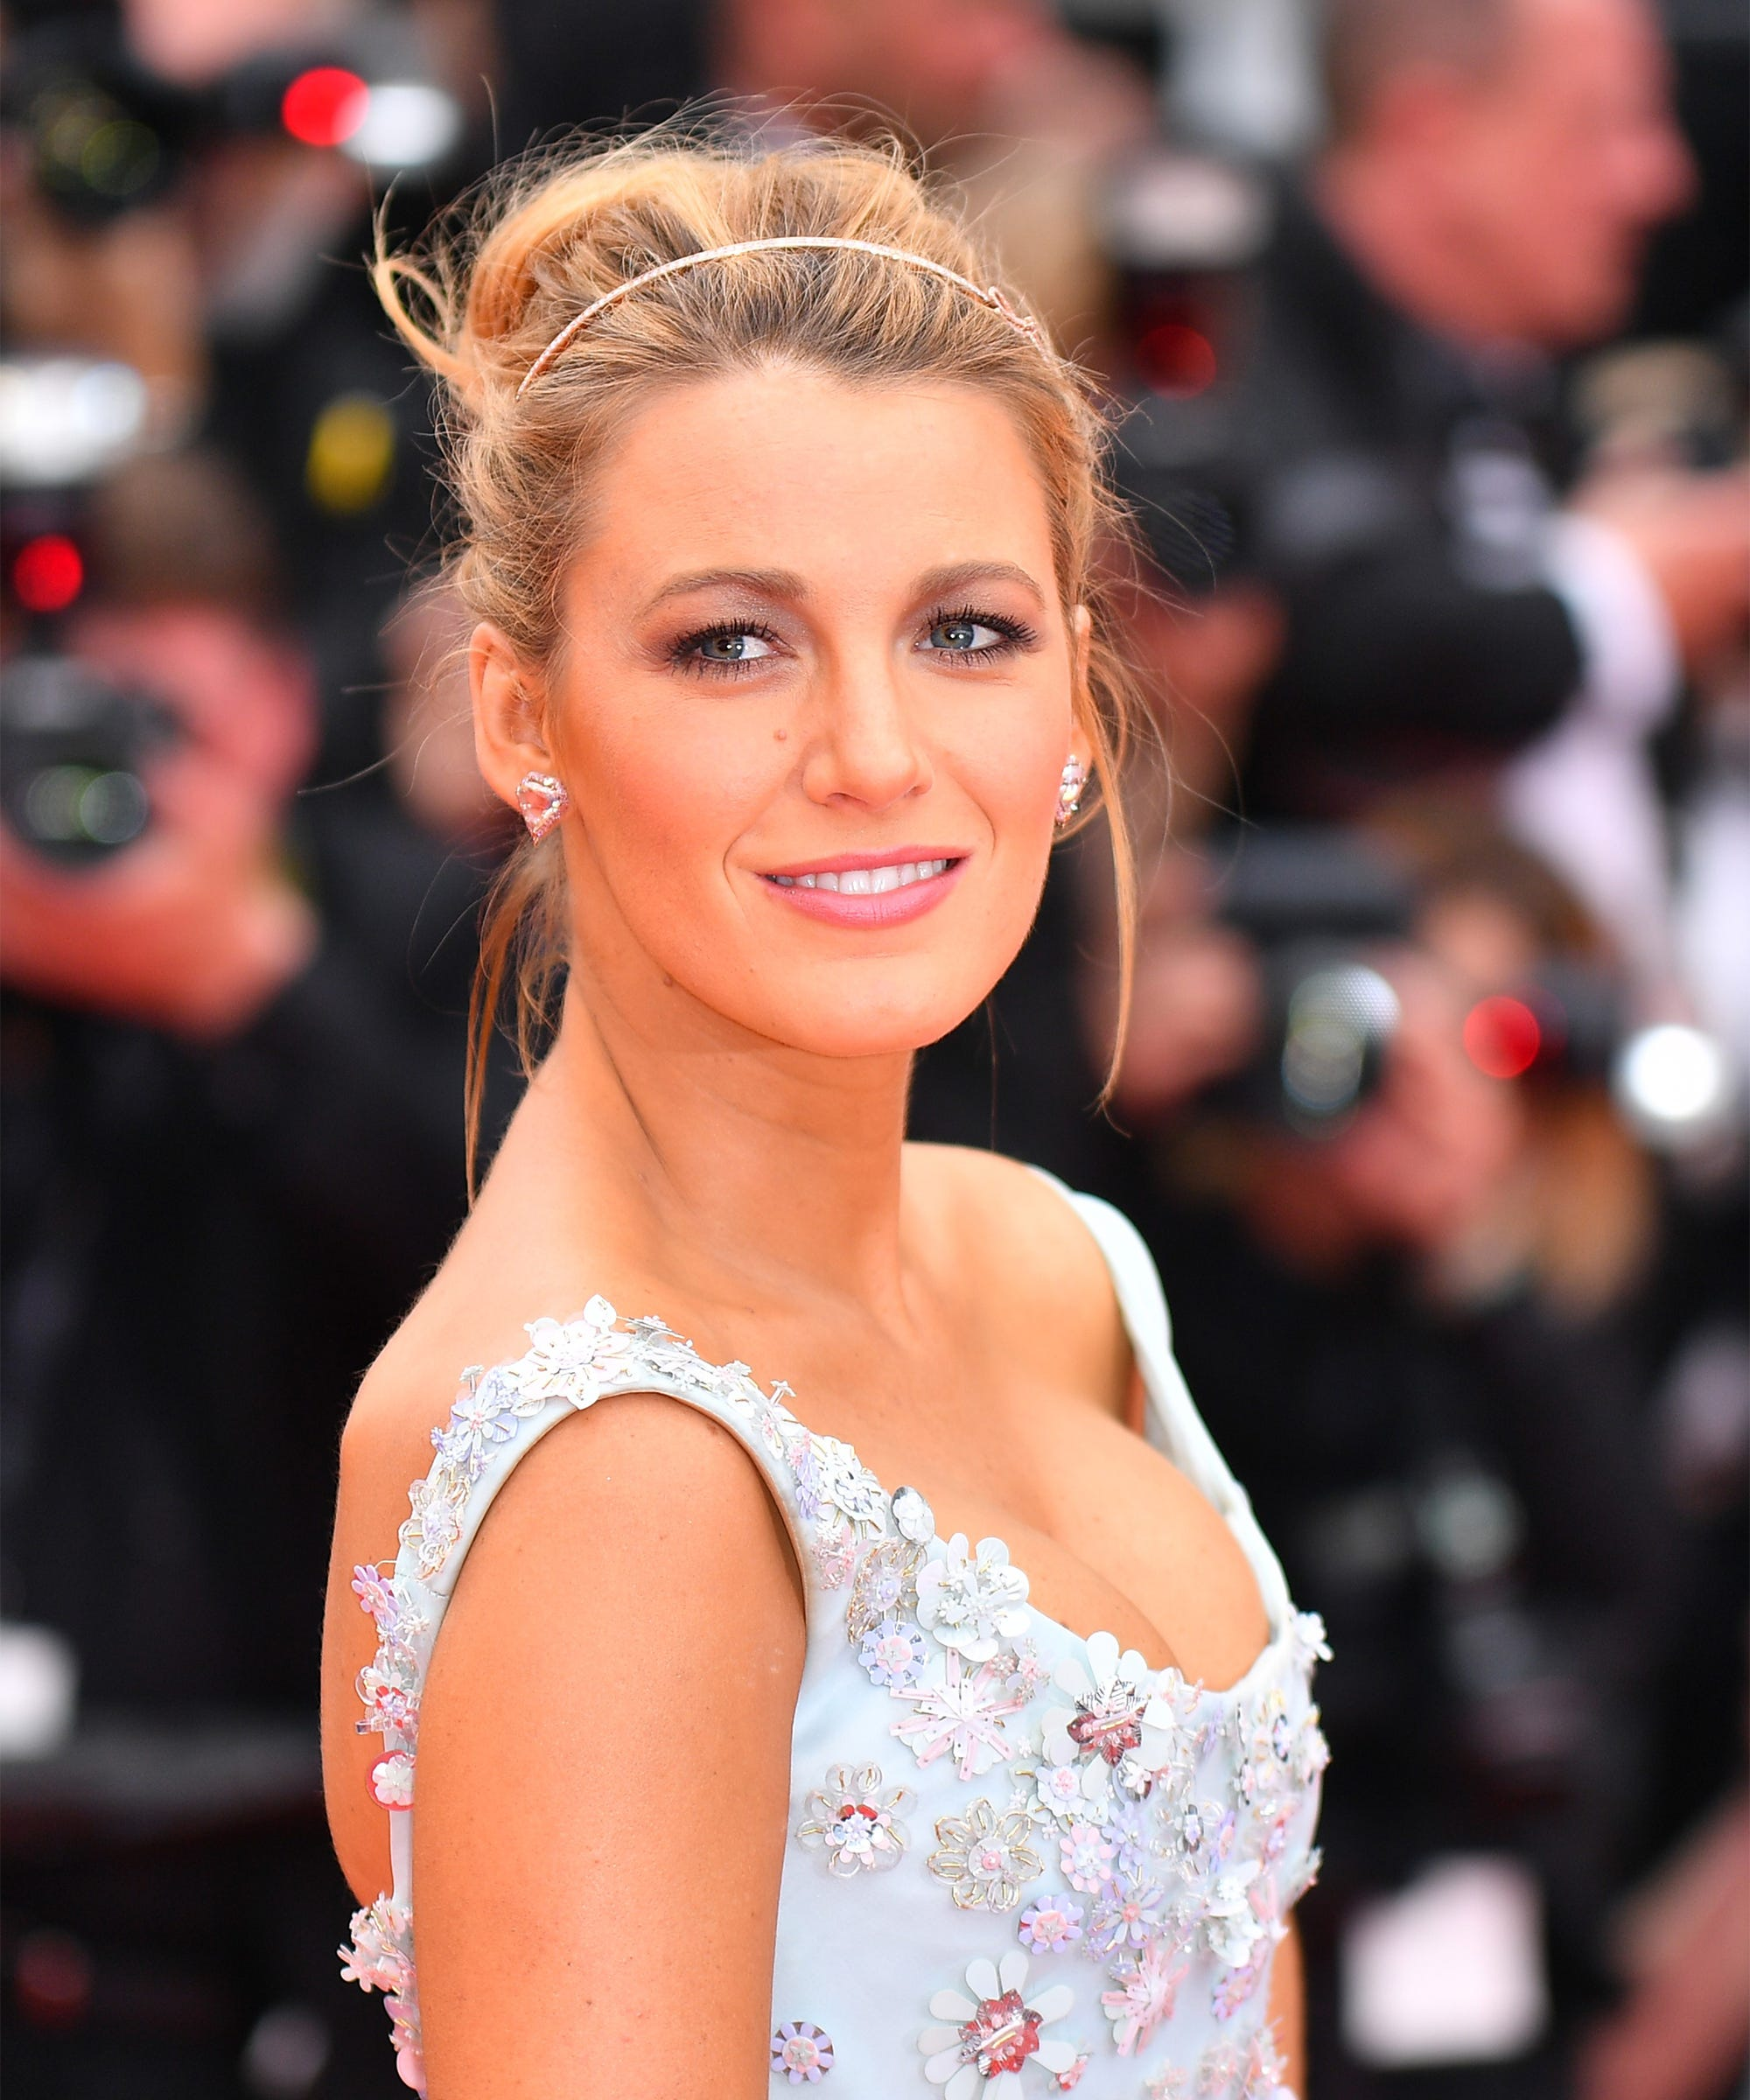 Why Blake Lively's Hair Always Looks So Damn Good